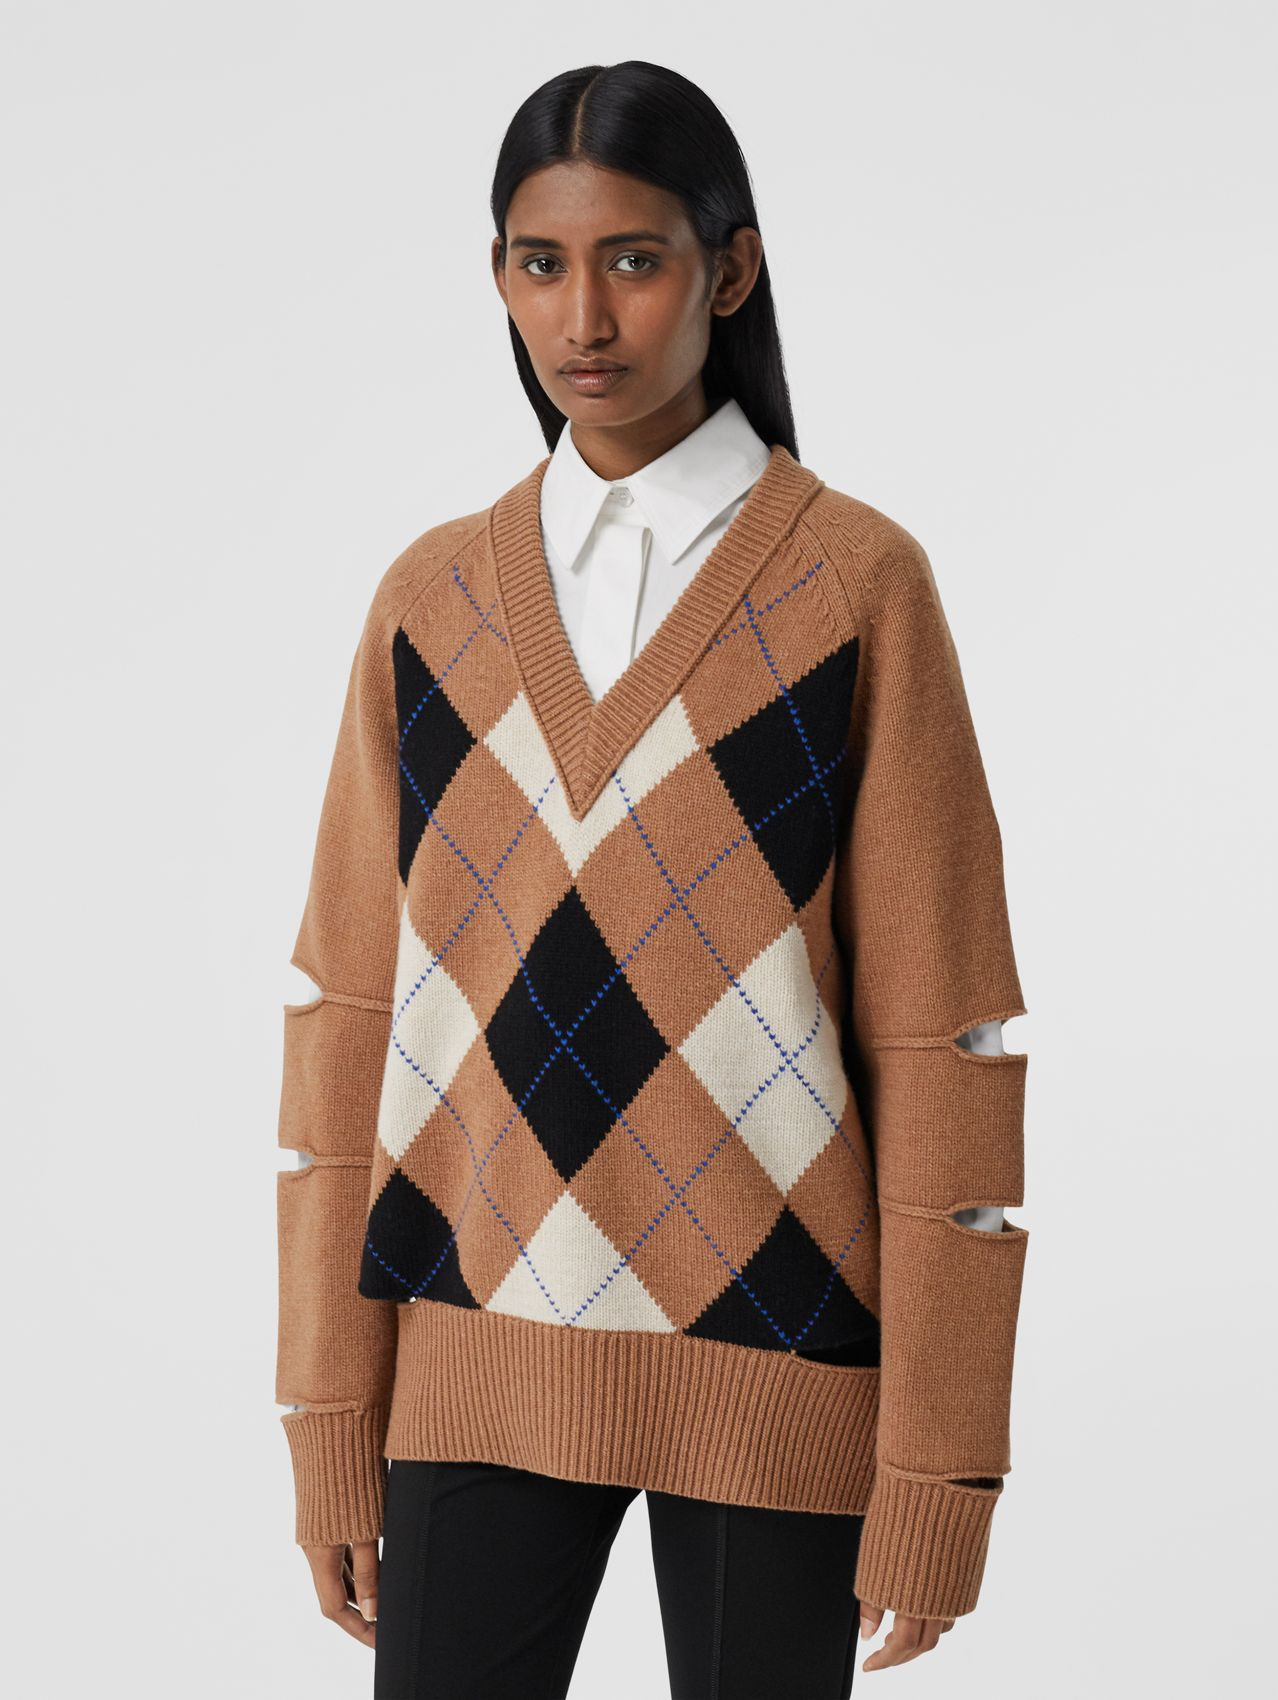 Cut-out Detail Argyle Intarsia Wool Cashmere Sweater in Camel